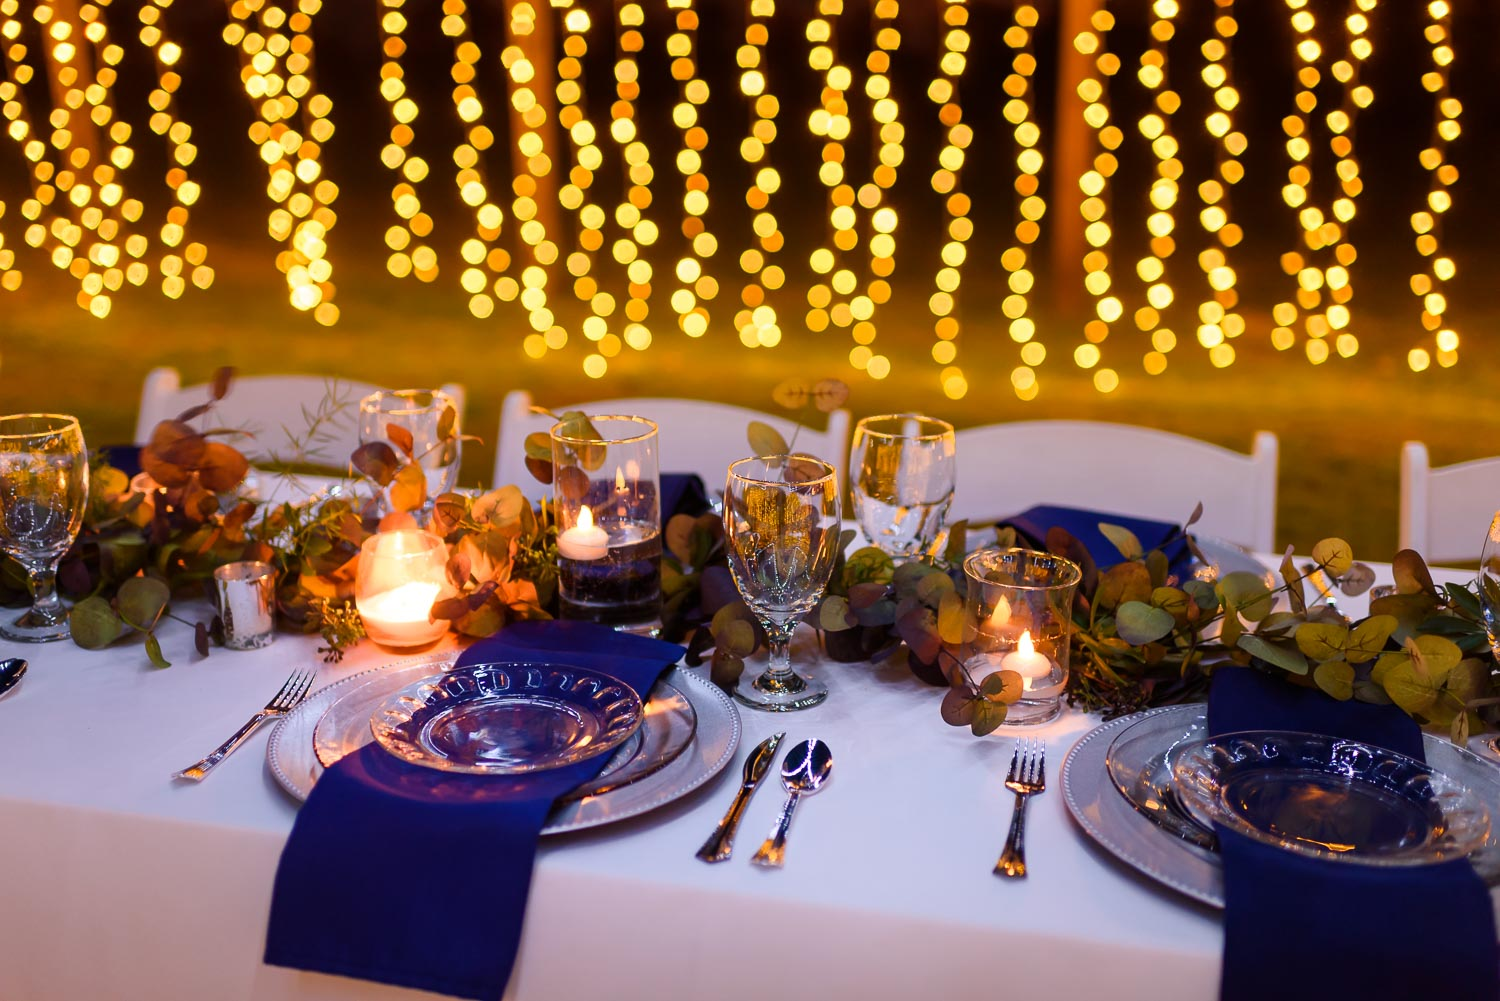 Stunning outdoor candlelight reception in royal blue and warm candle light